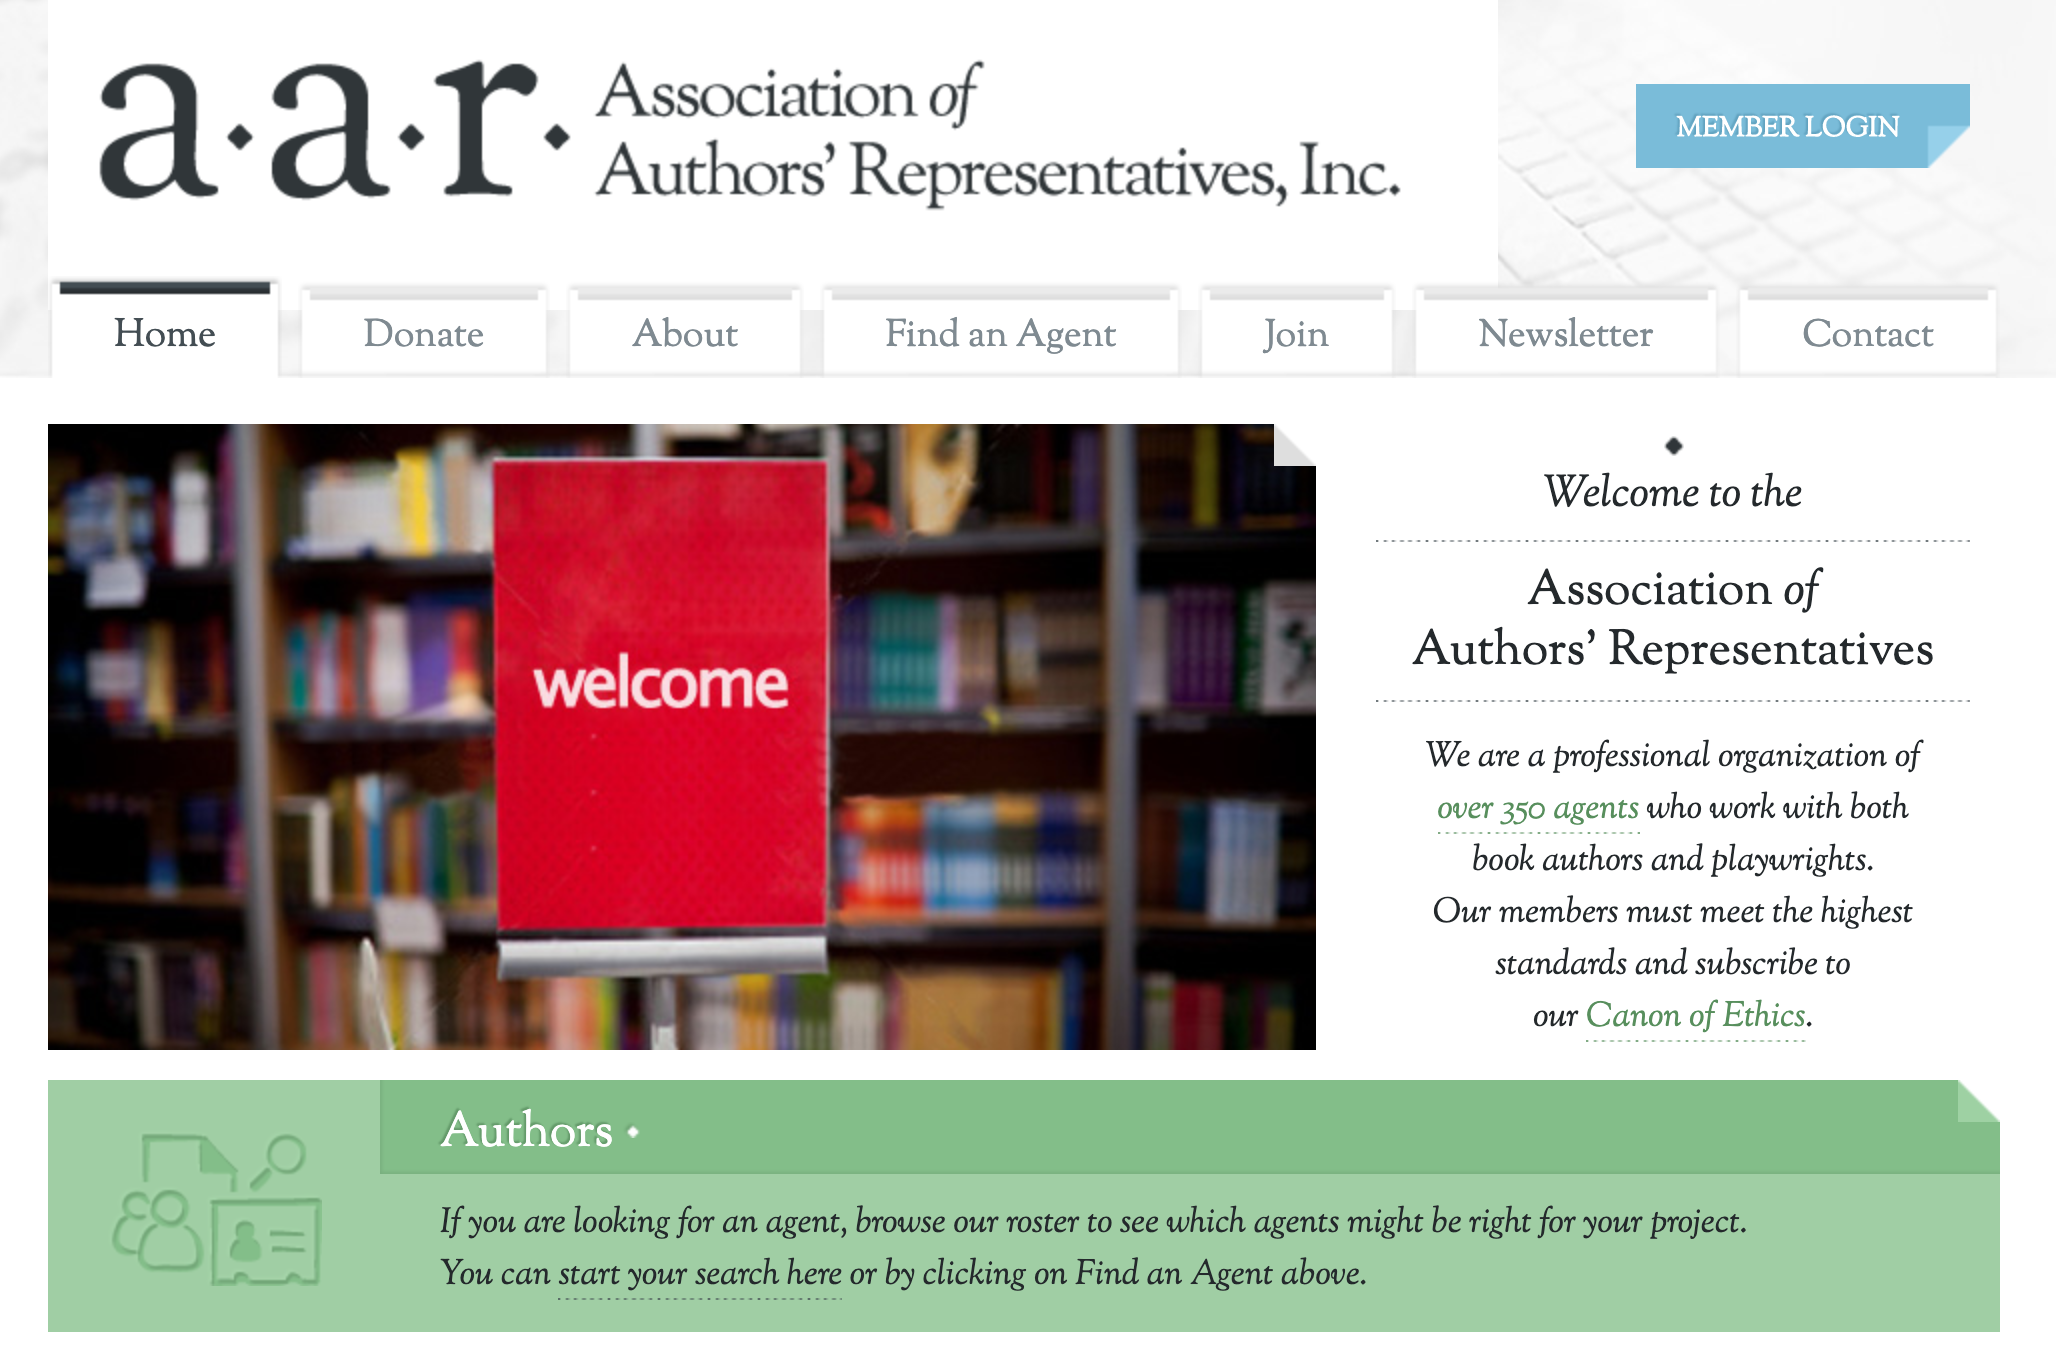 association of authors representatives website